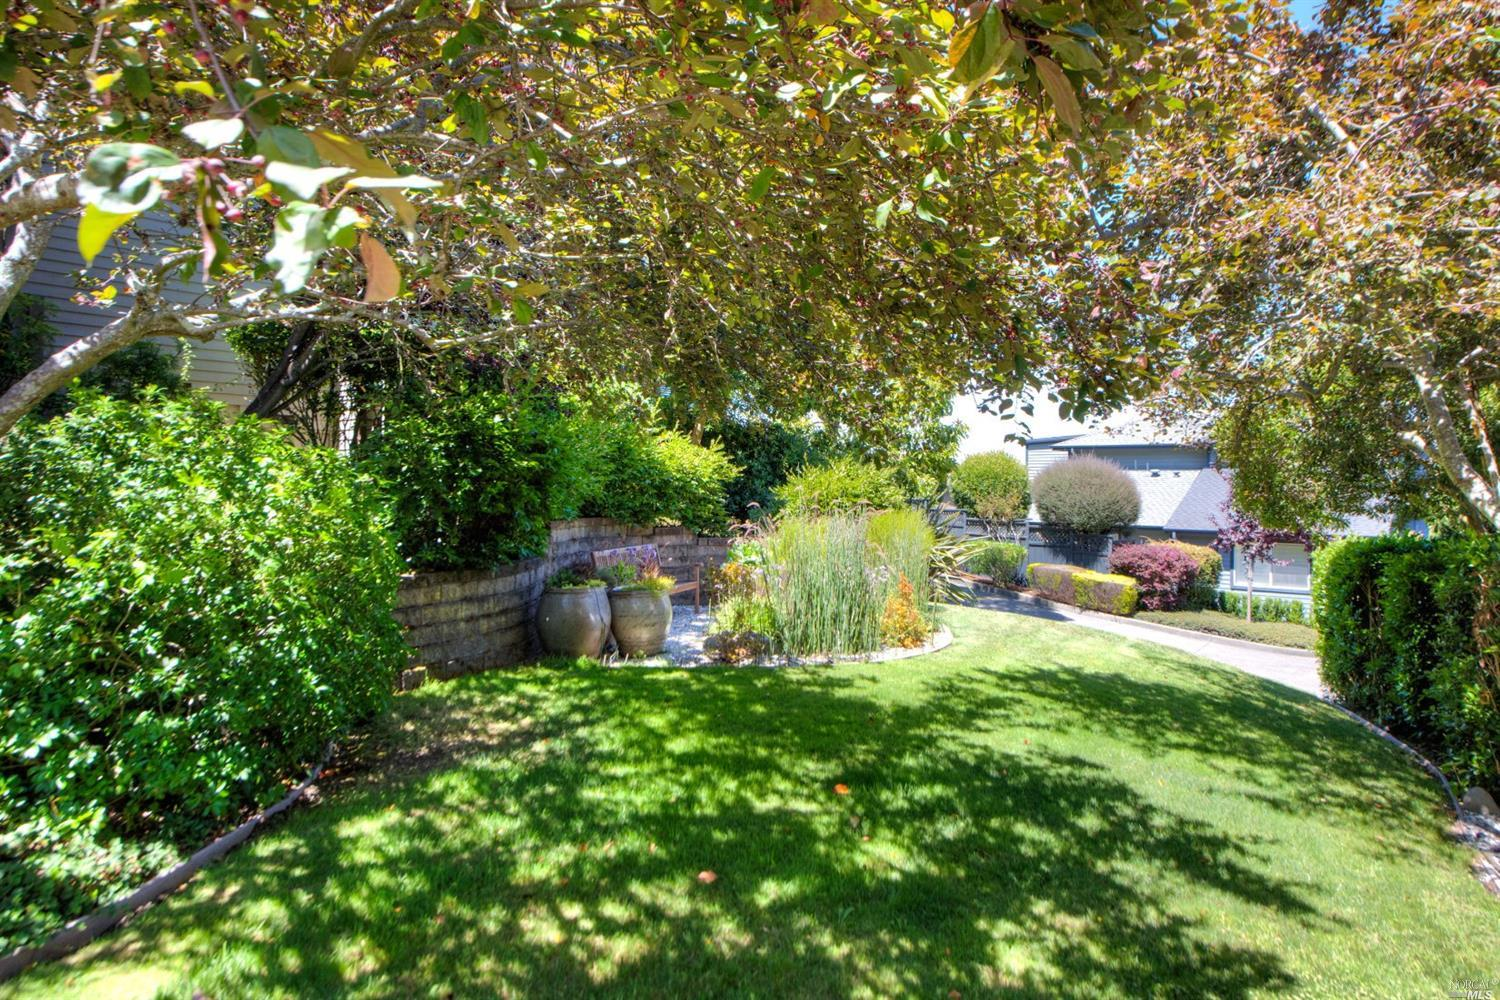 806 Butte street Sausalito, CA 94965 - MLS #: 21716778